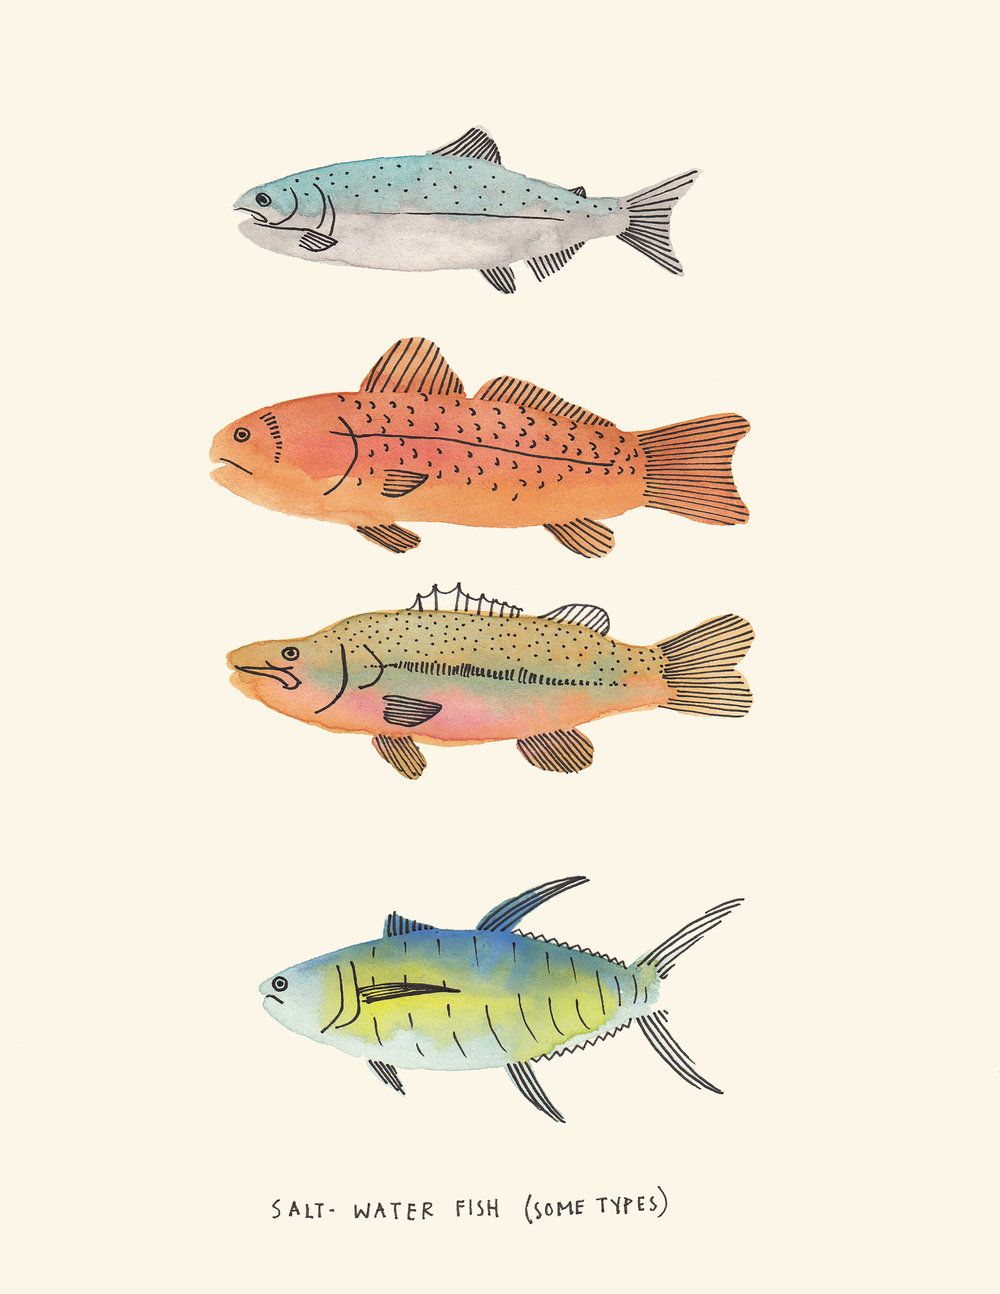 Some Types of Fish, 2015